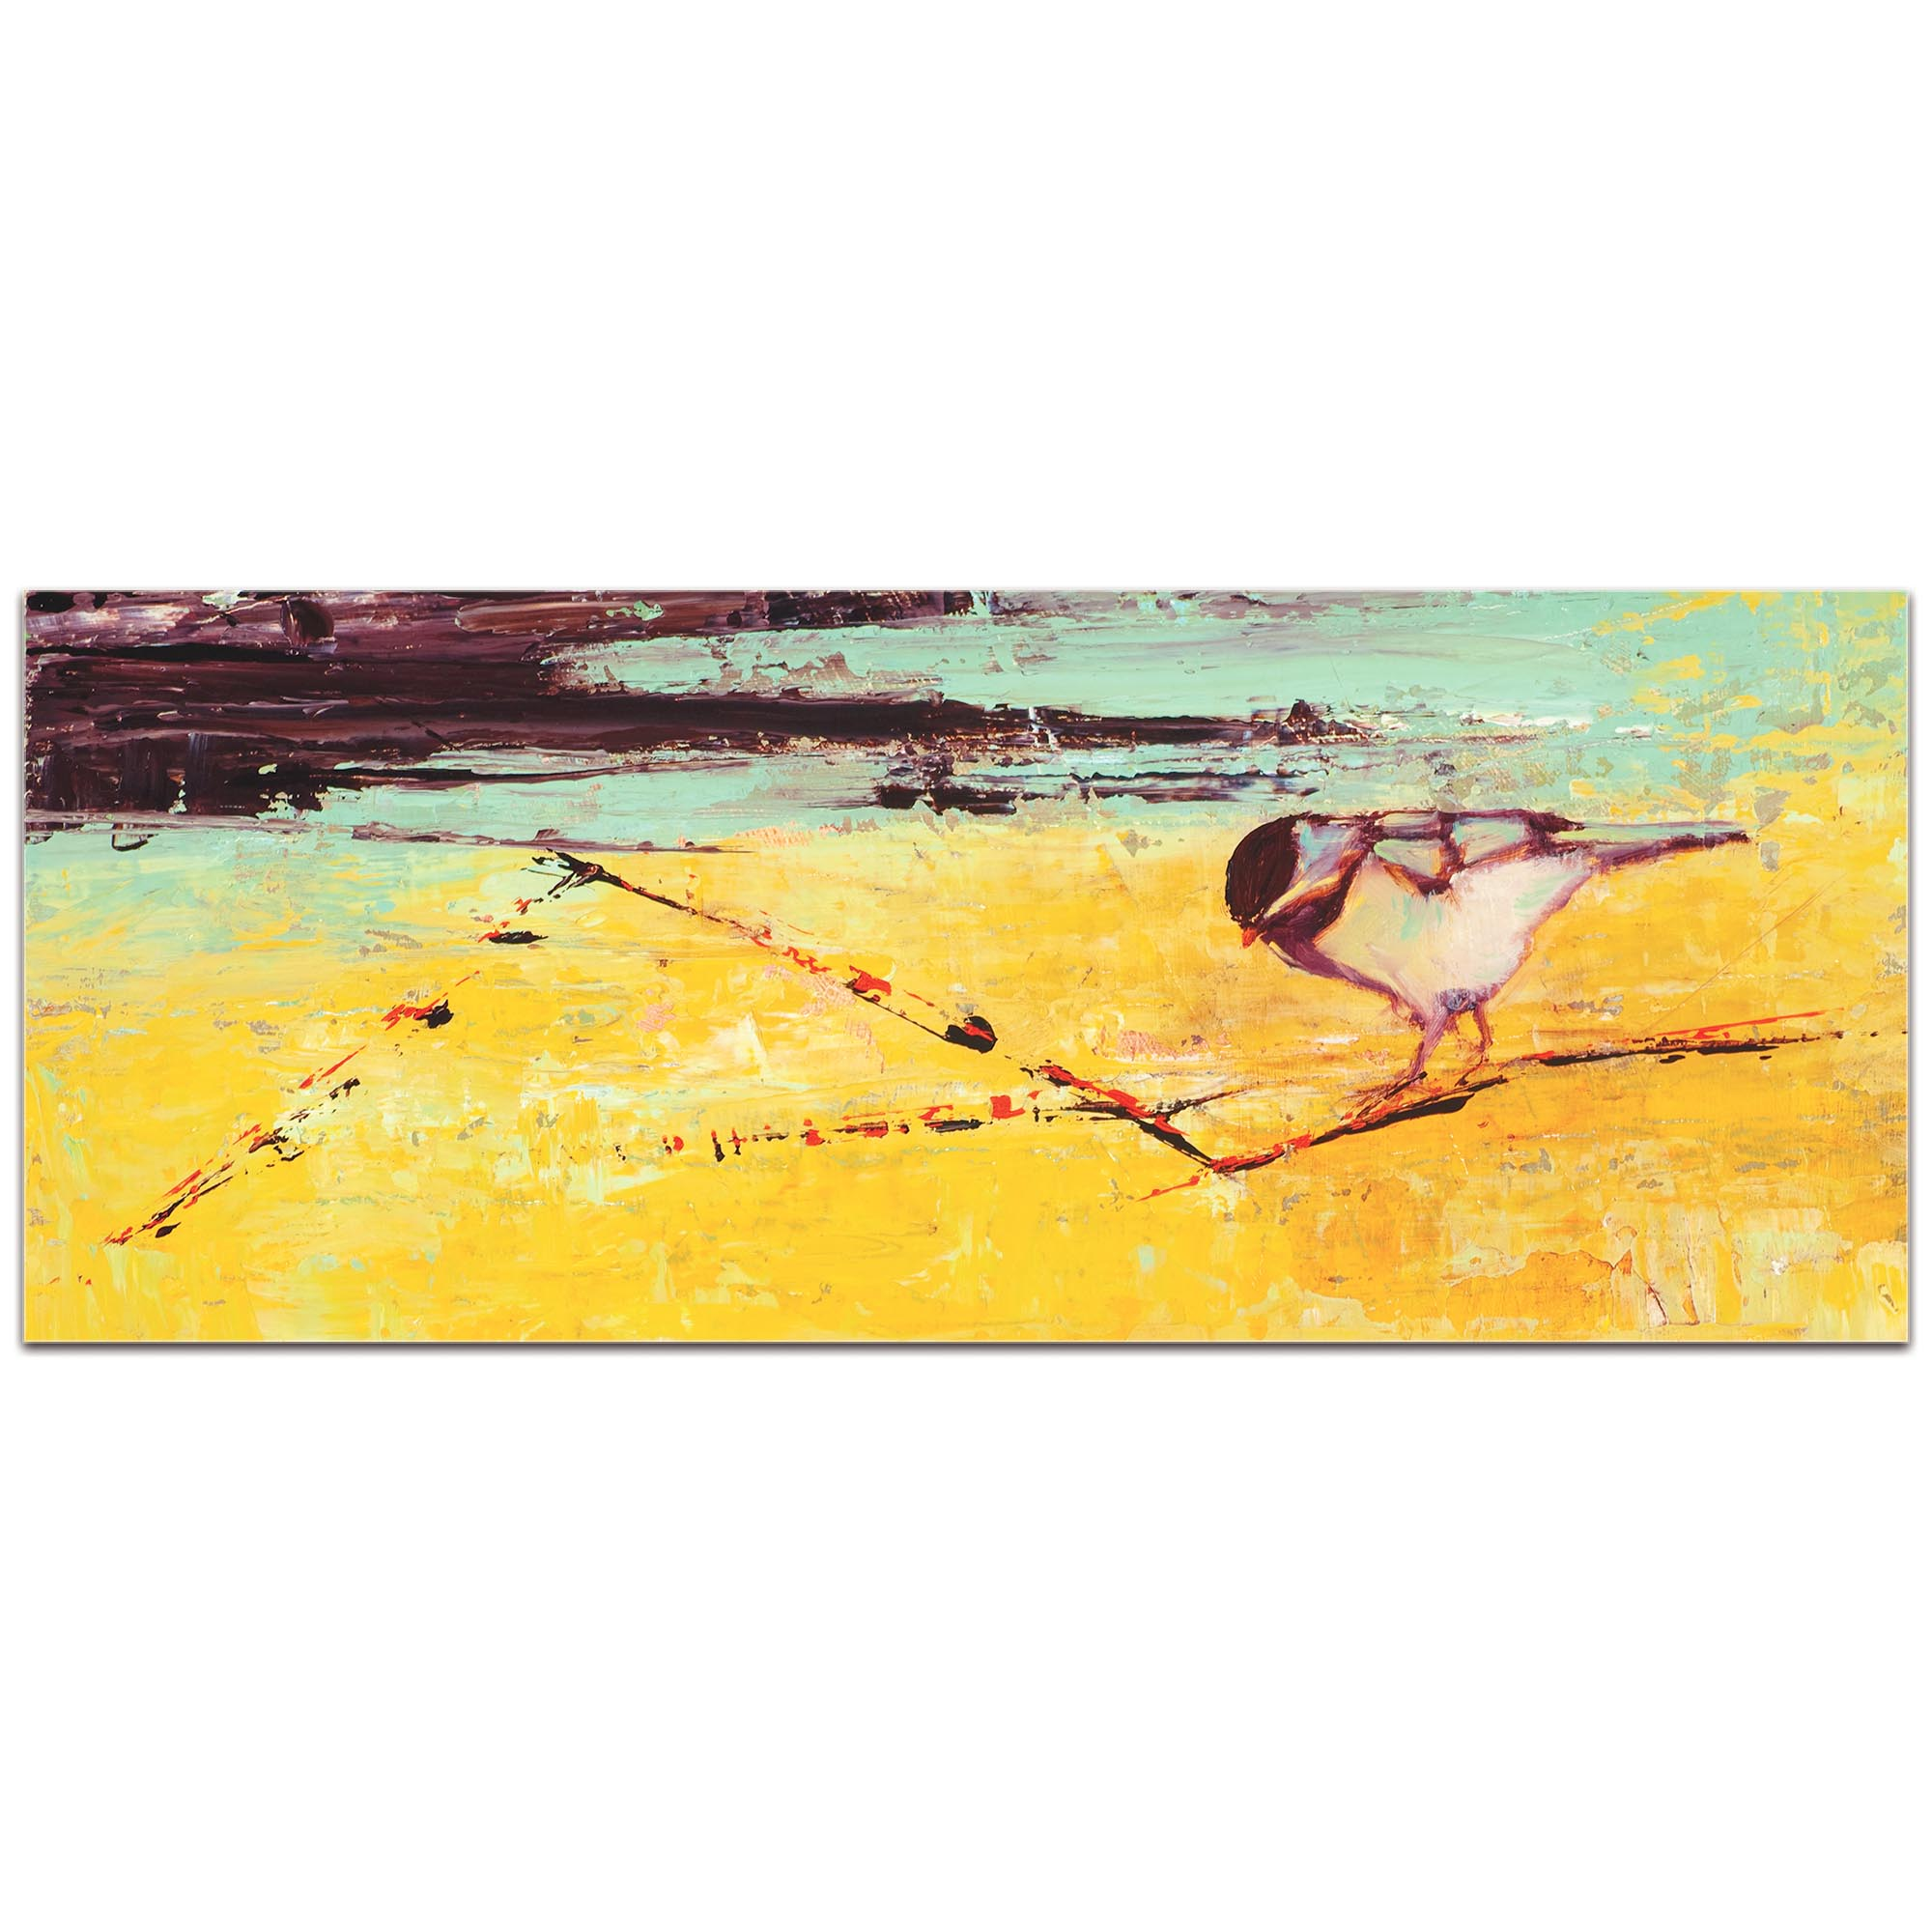 Contemporary Wall Art 'Bird on a Horizon v2' - Urban Birds Decor on Metal or Plexiglass - Image 2